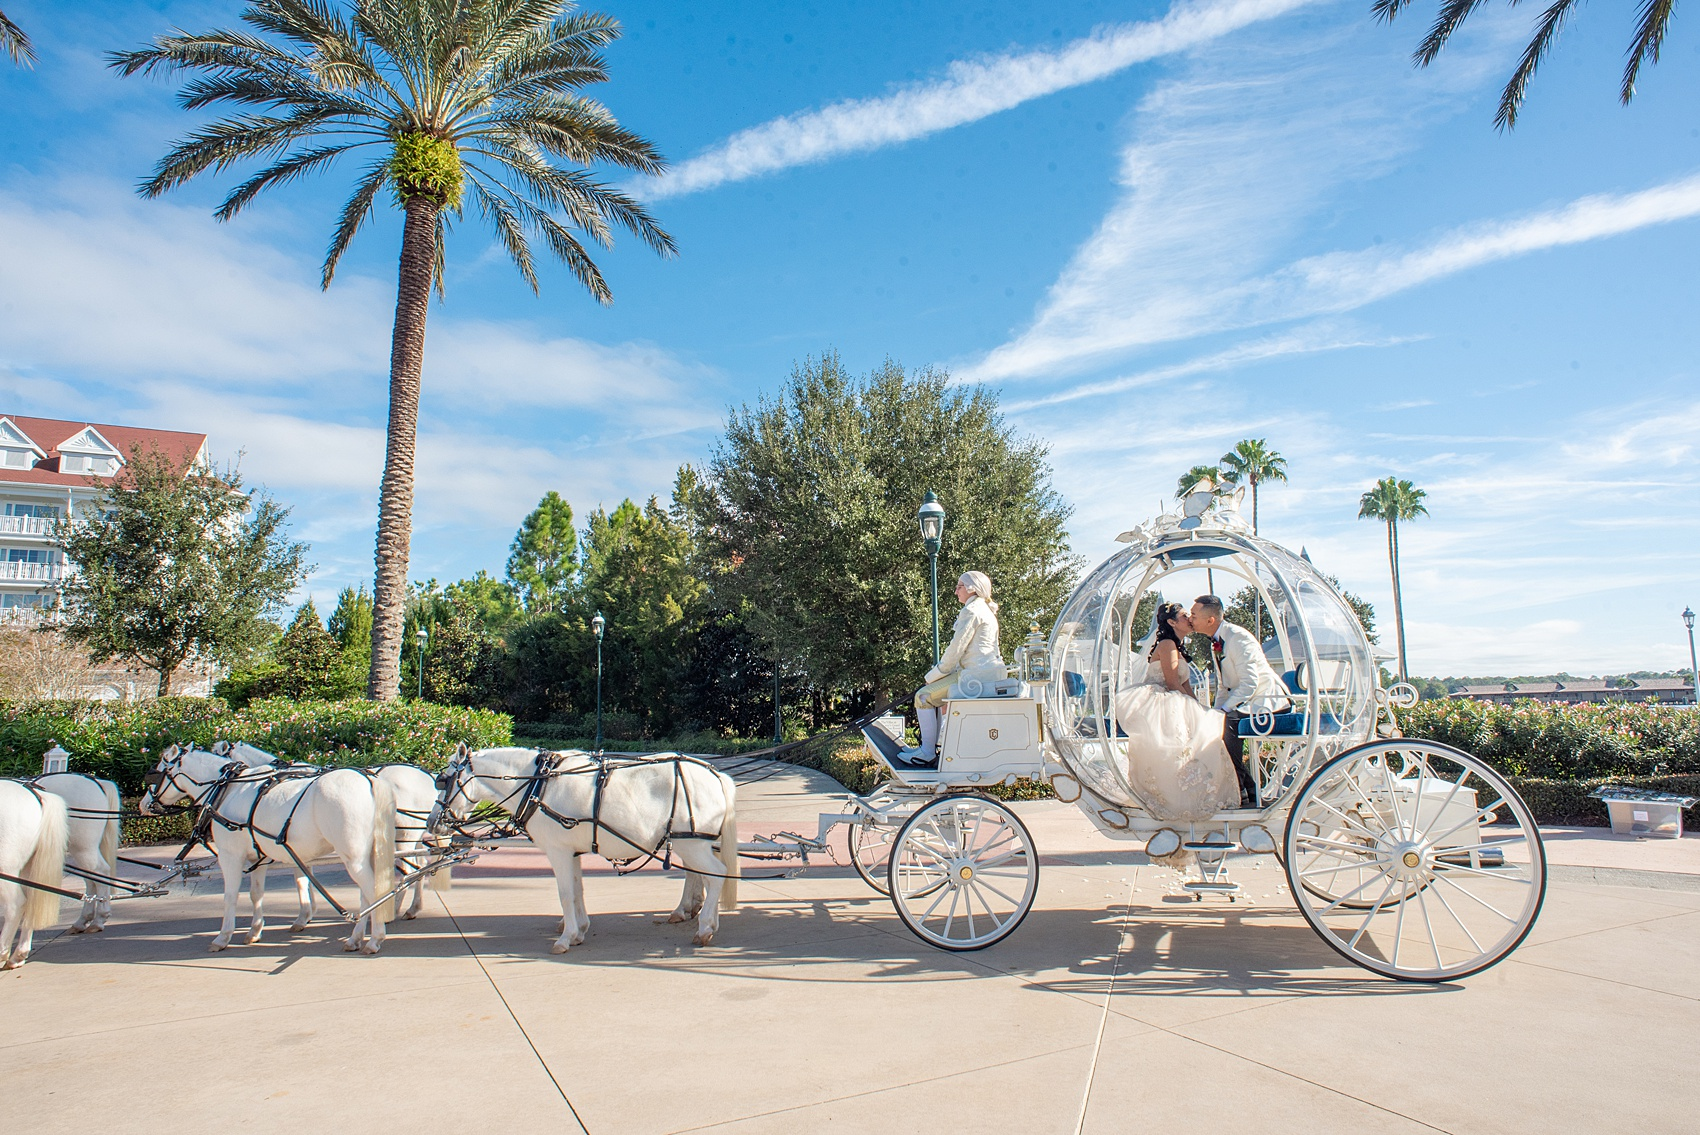 Walt Disney World photographs by Mikkel Paige Photography. The bride and groom celebrated to their ceremony in style in Cinderella's Glass Coach with white ponies. They took pictures at the Grand Floridian Resort and Wedding Pavilion with this awesome transportation. #disneywedding #disneybride #waltdisneyworld #DisneyWorldWedding #CinderellaCarriage #GlassCoach